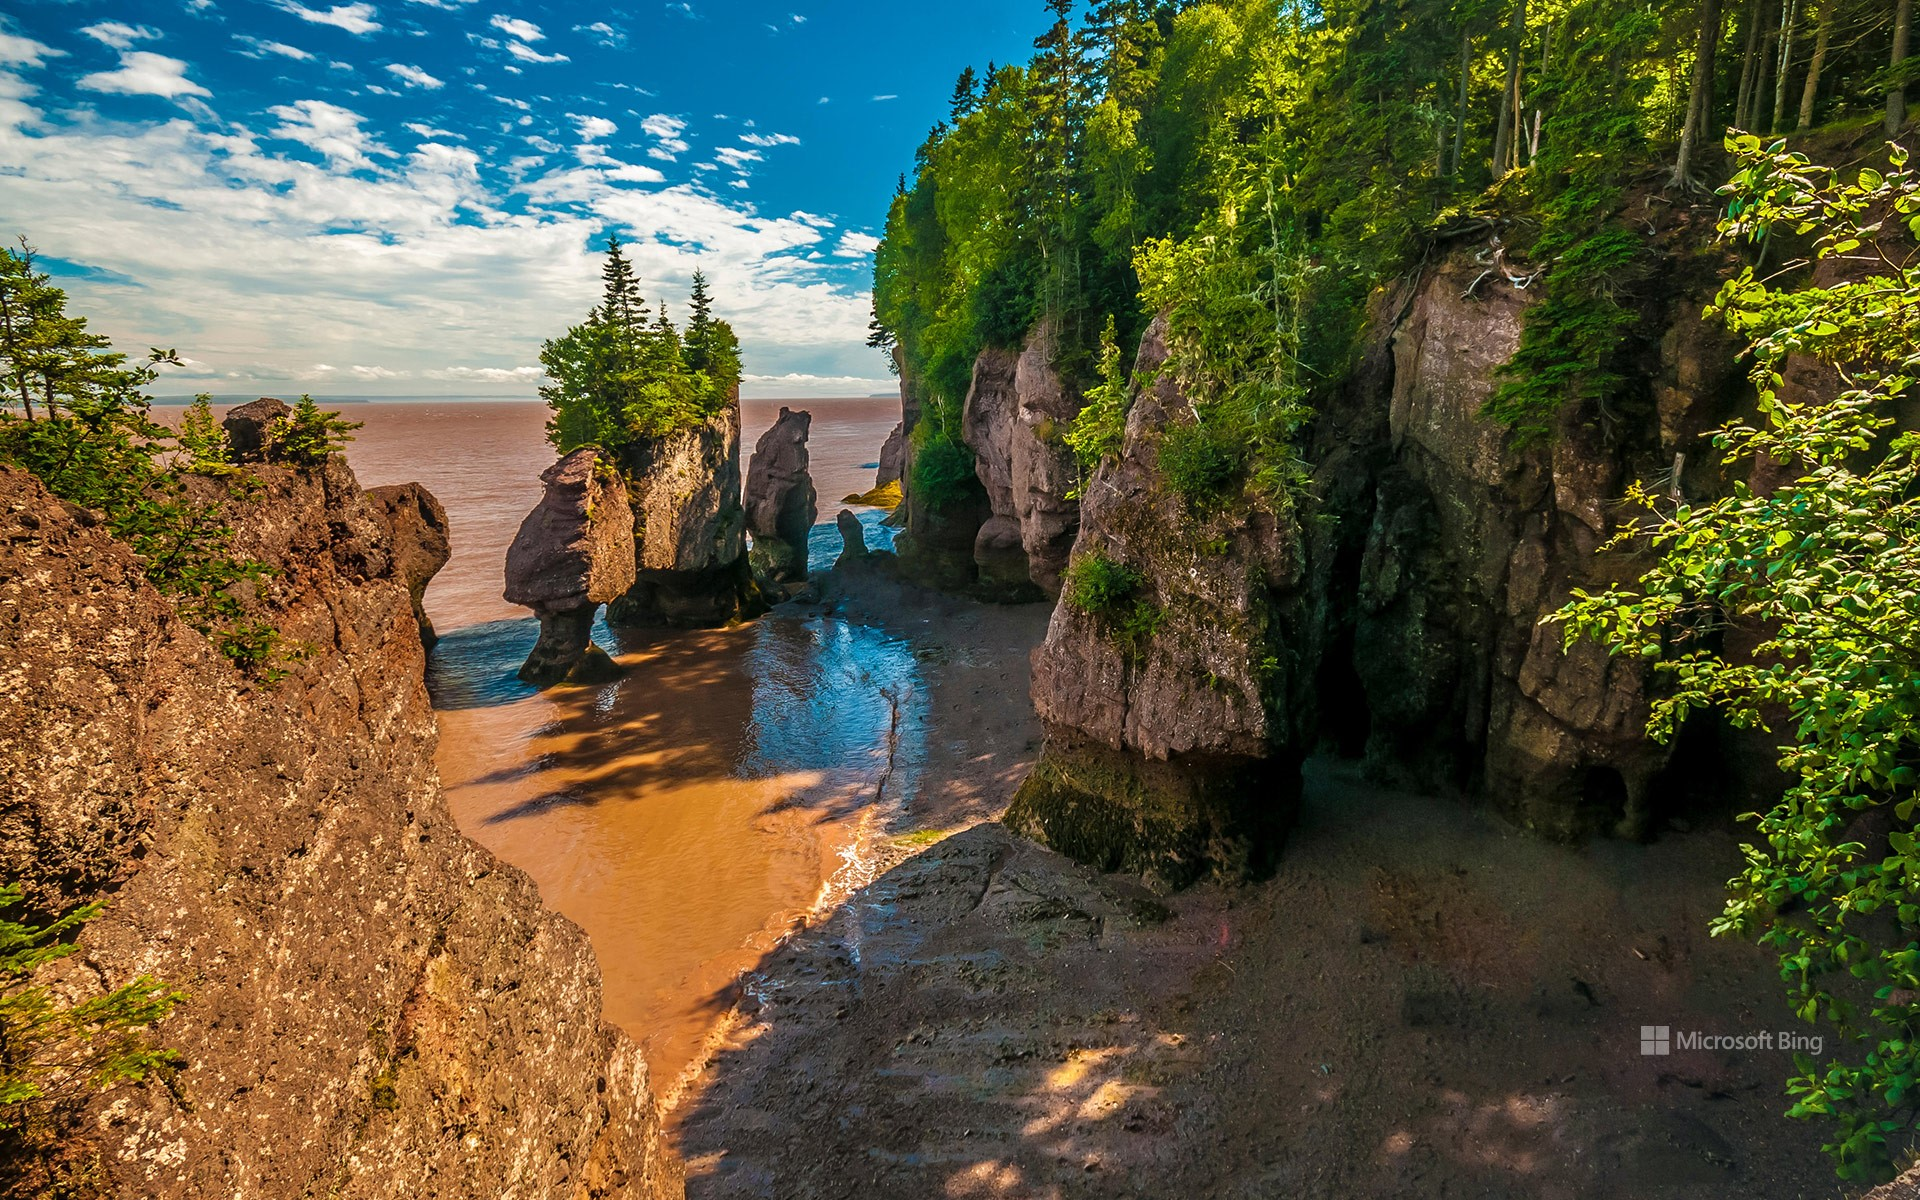 Geological site of Hopewell Rocks in New Brunswick